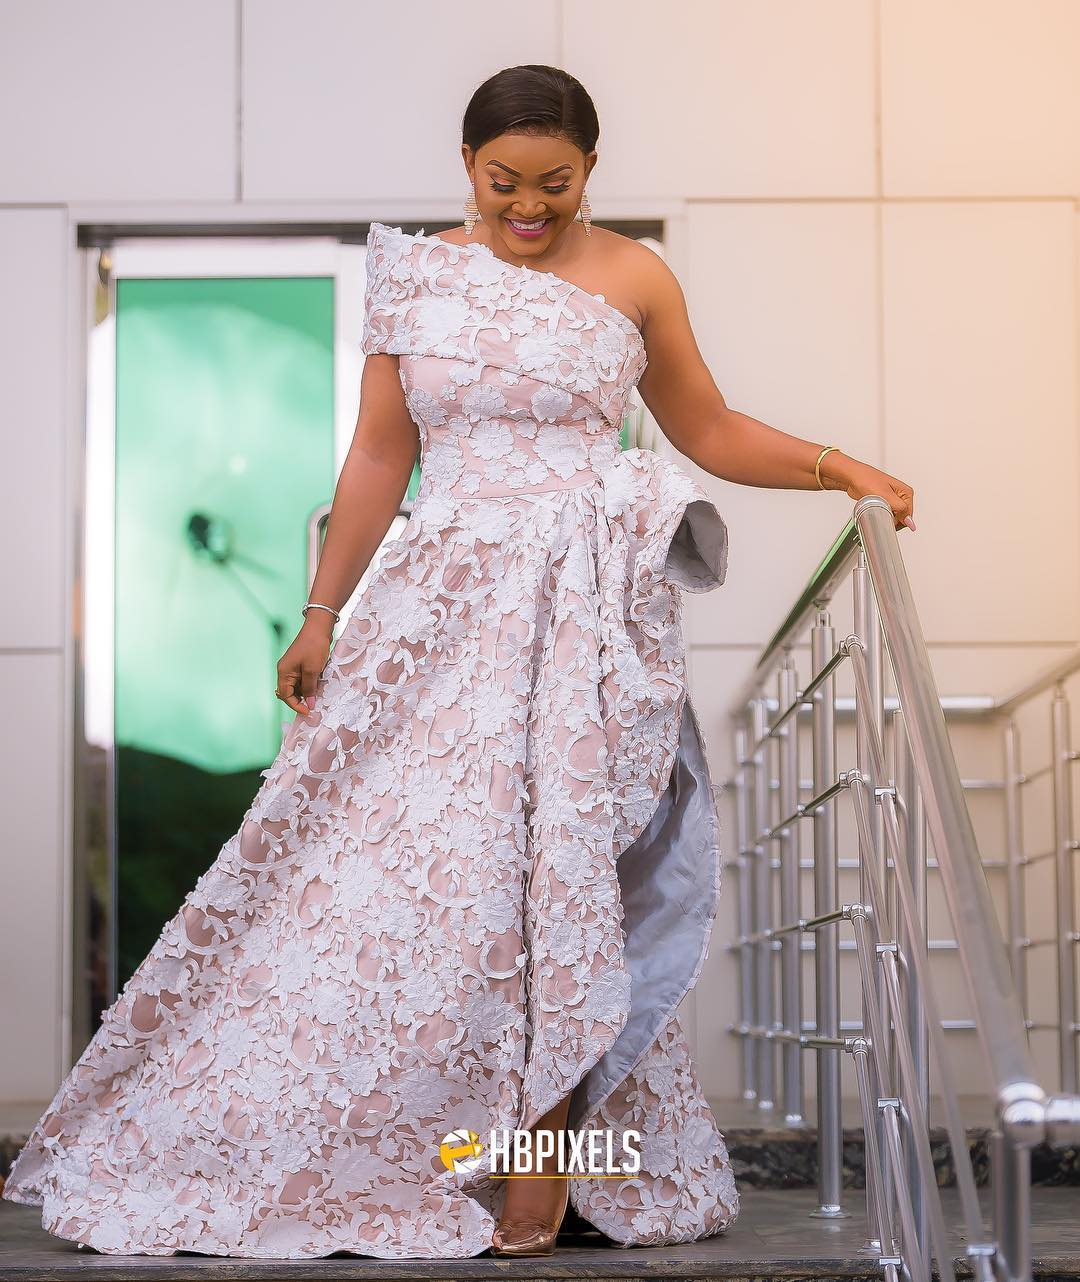 The Best Nigerian Fashion For Woman In 2018 7